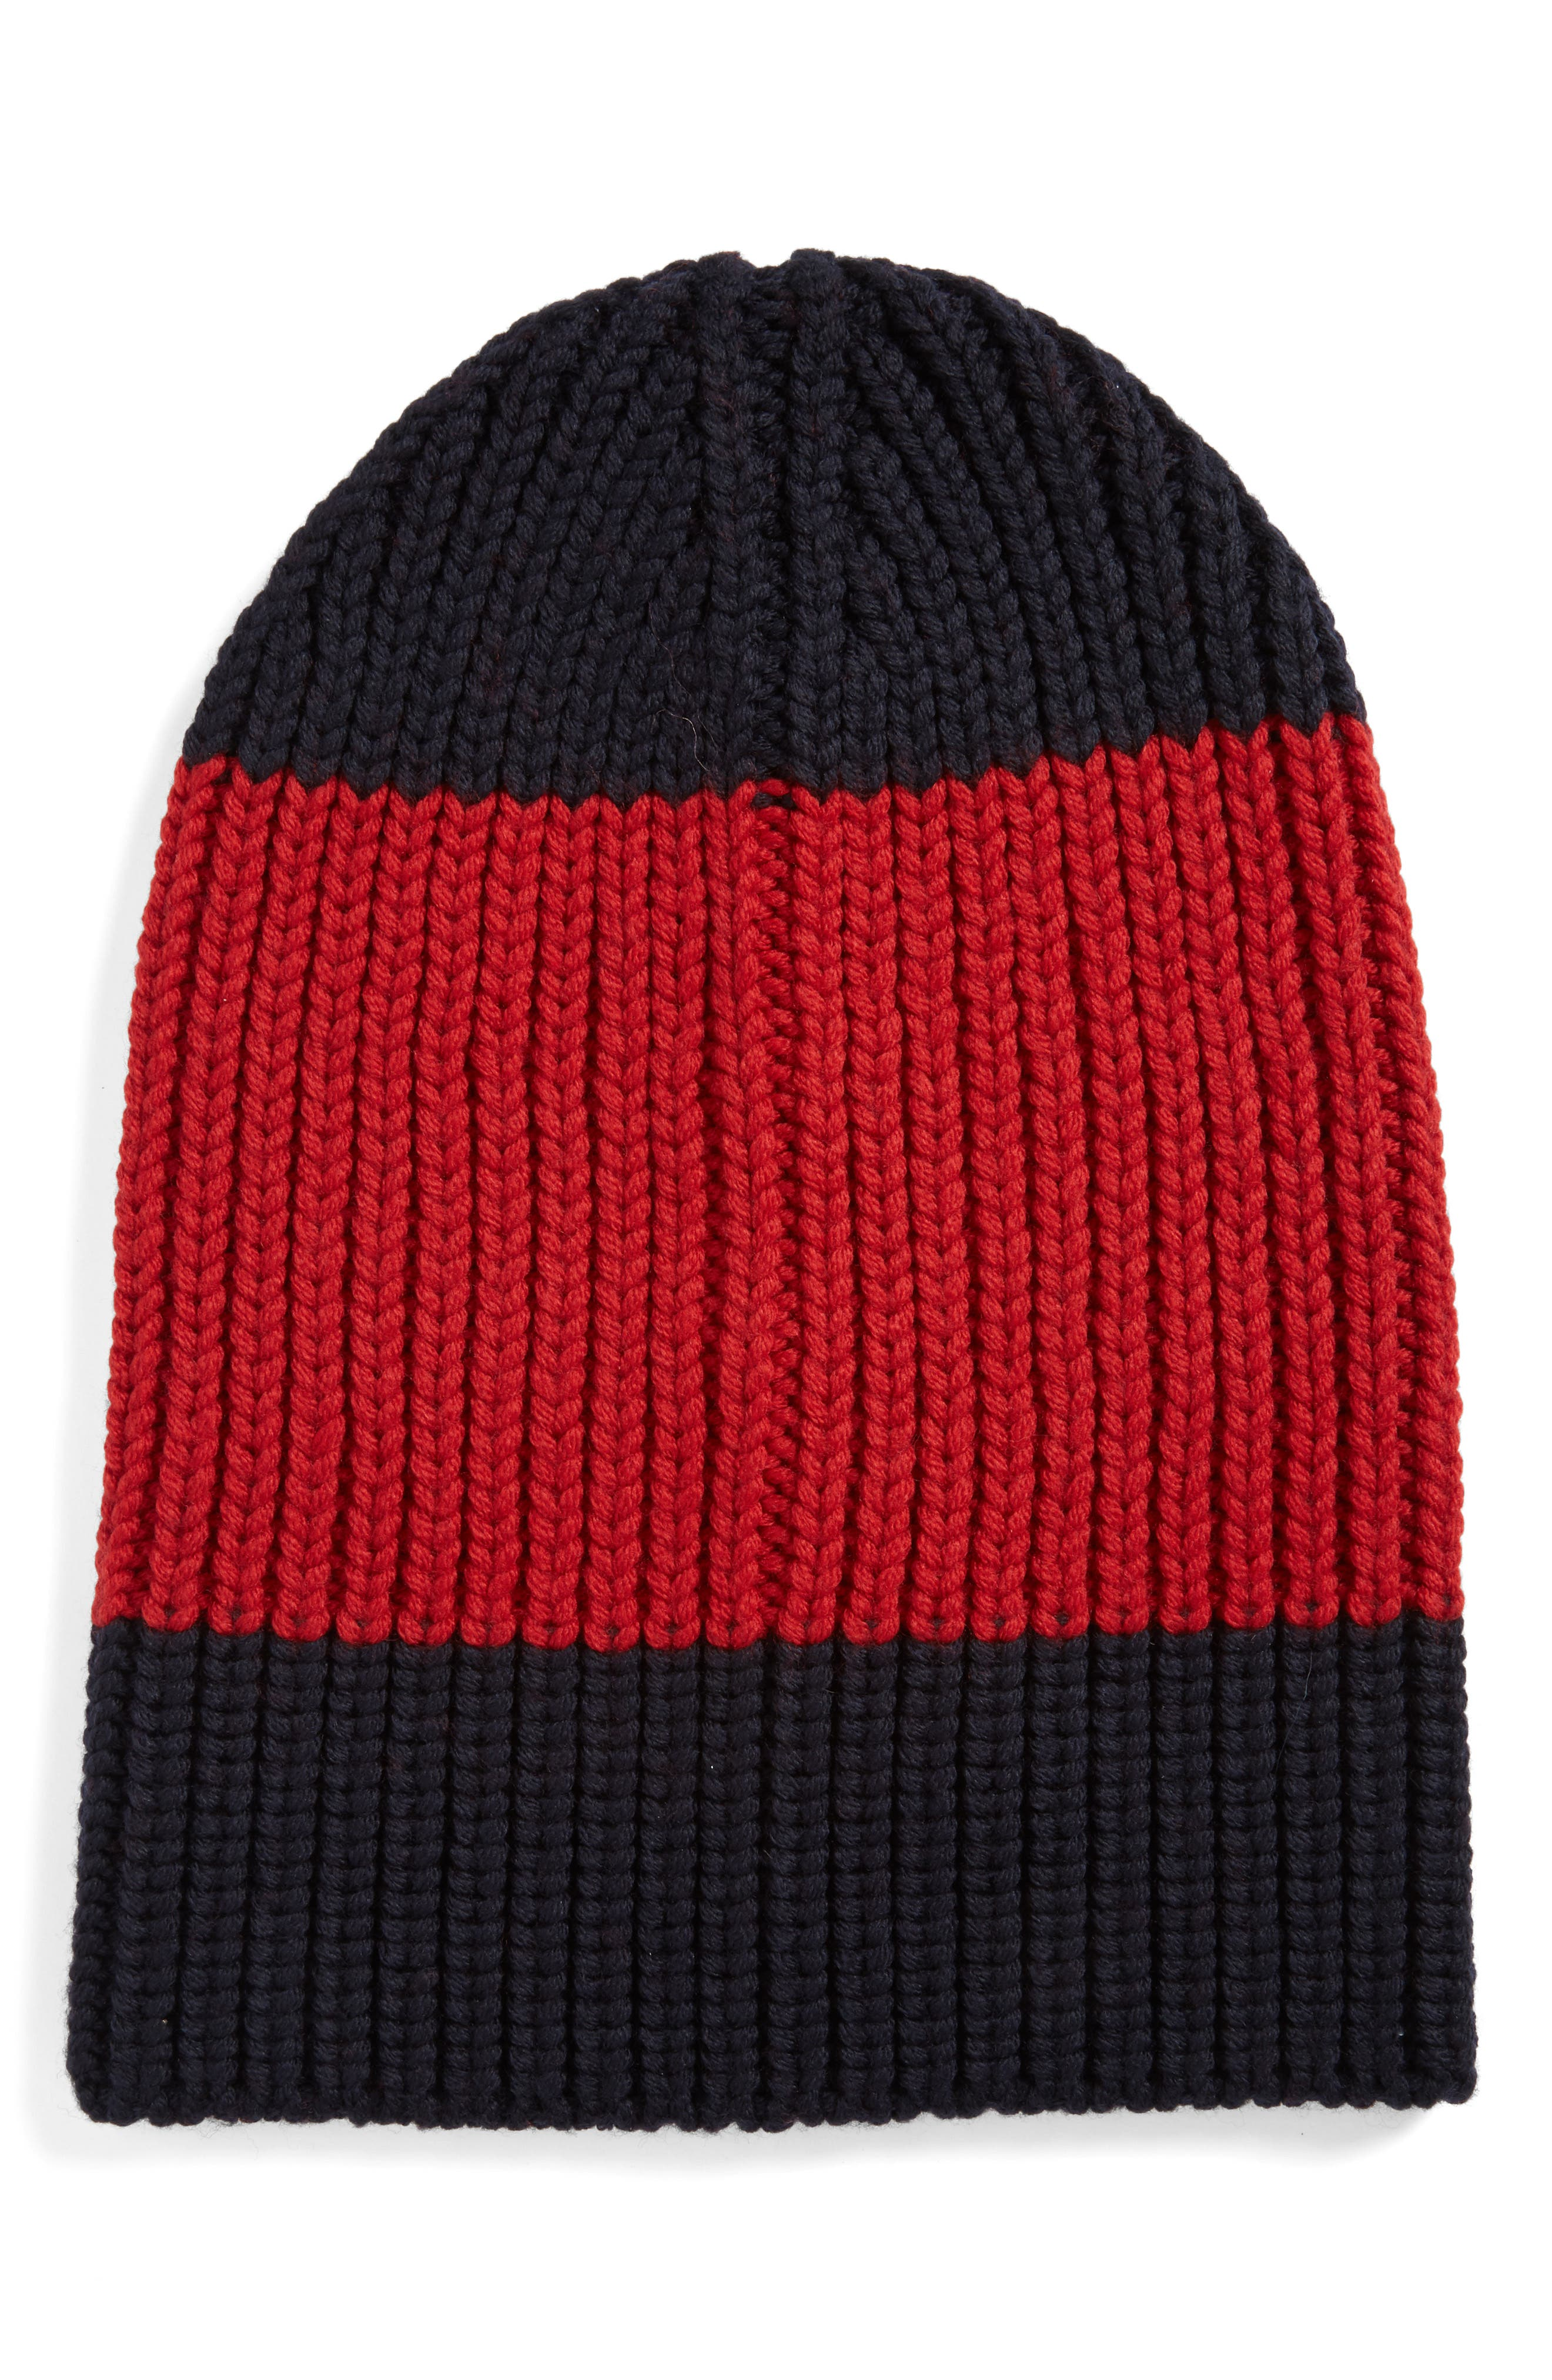 Gucci Colorblock Wool Knit Cap